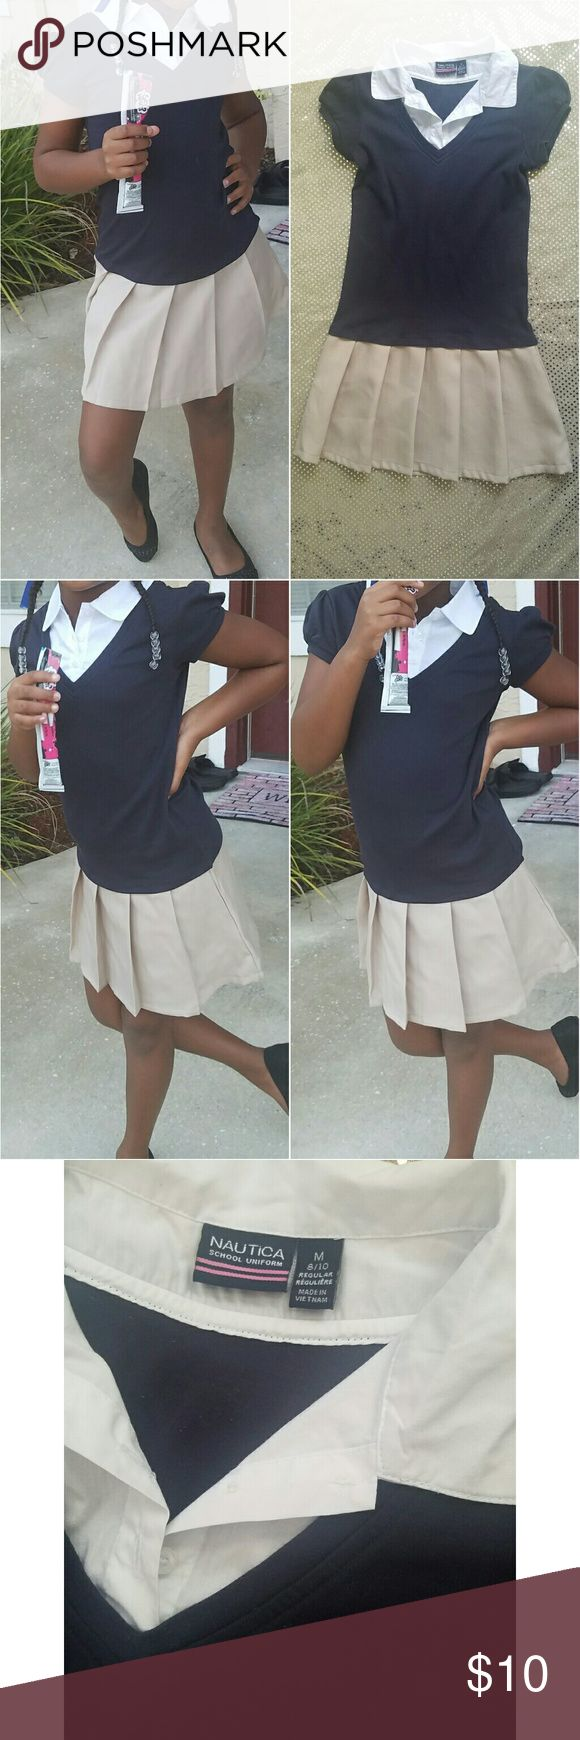 📚✏BACK TO SCHOOL SALE Nautica Uniform Combo Get your hands on this high quality skirt/shirt combo!  Navy Blue top Khaki Skirt White collar  No fading, in GREAT condition.  Medium (8/10) Nautica Dresses Casual